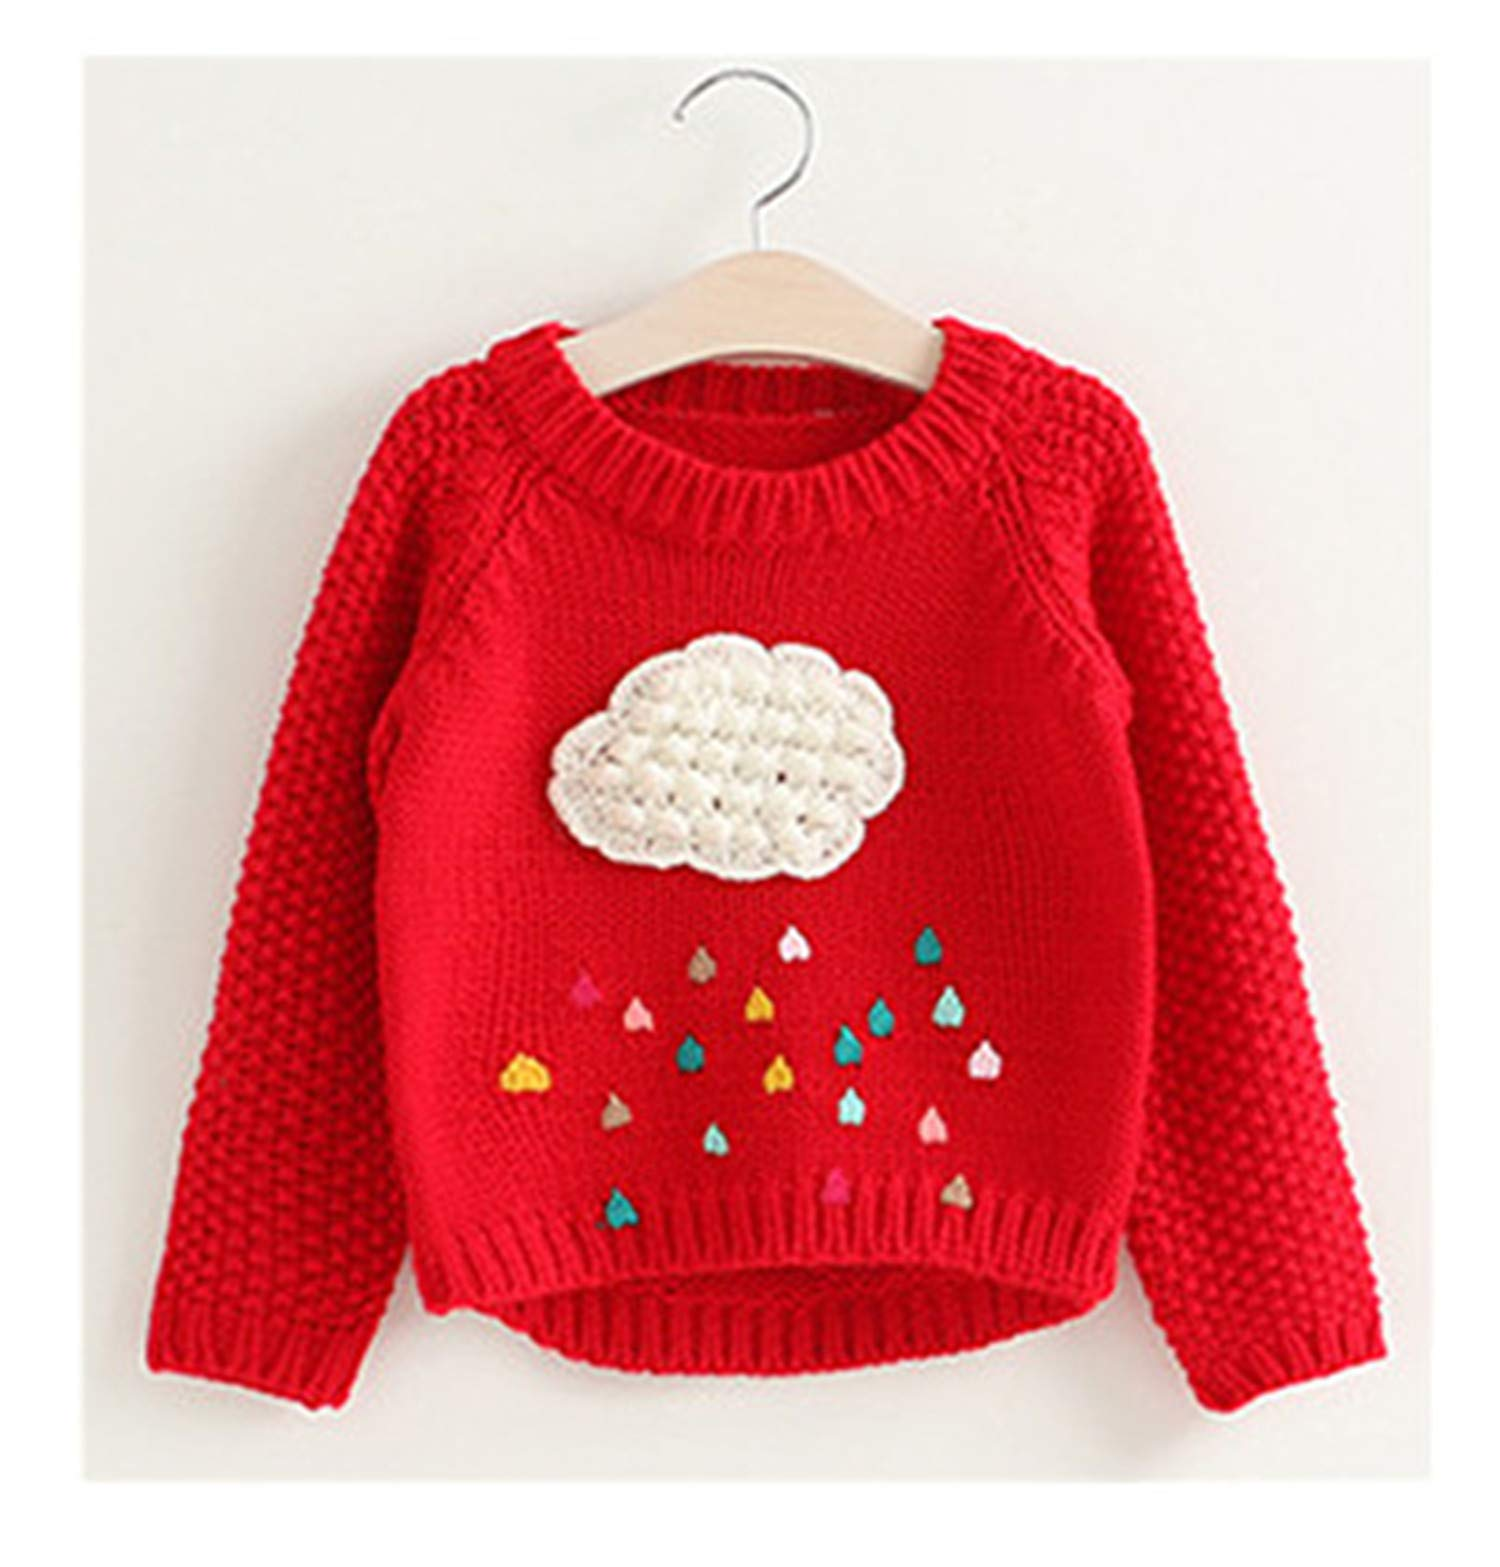 New Cartoon Clouds Pullover Raindrop Printed Thick Sweater Top for Children's Kids Clothes Red 4T